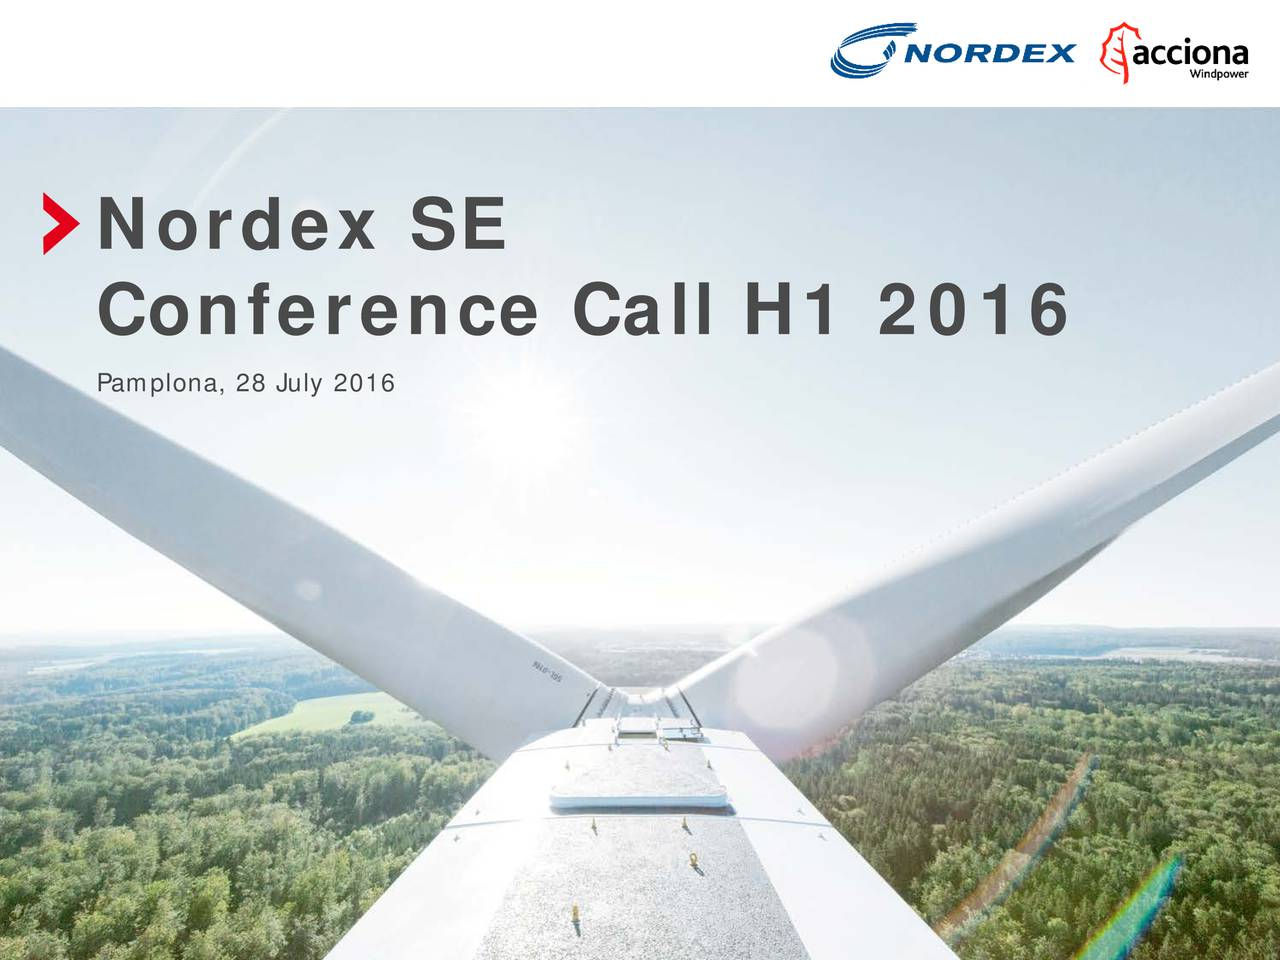 Conference Call H1 2016 Pamplona, 28 July 2016